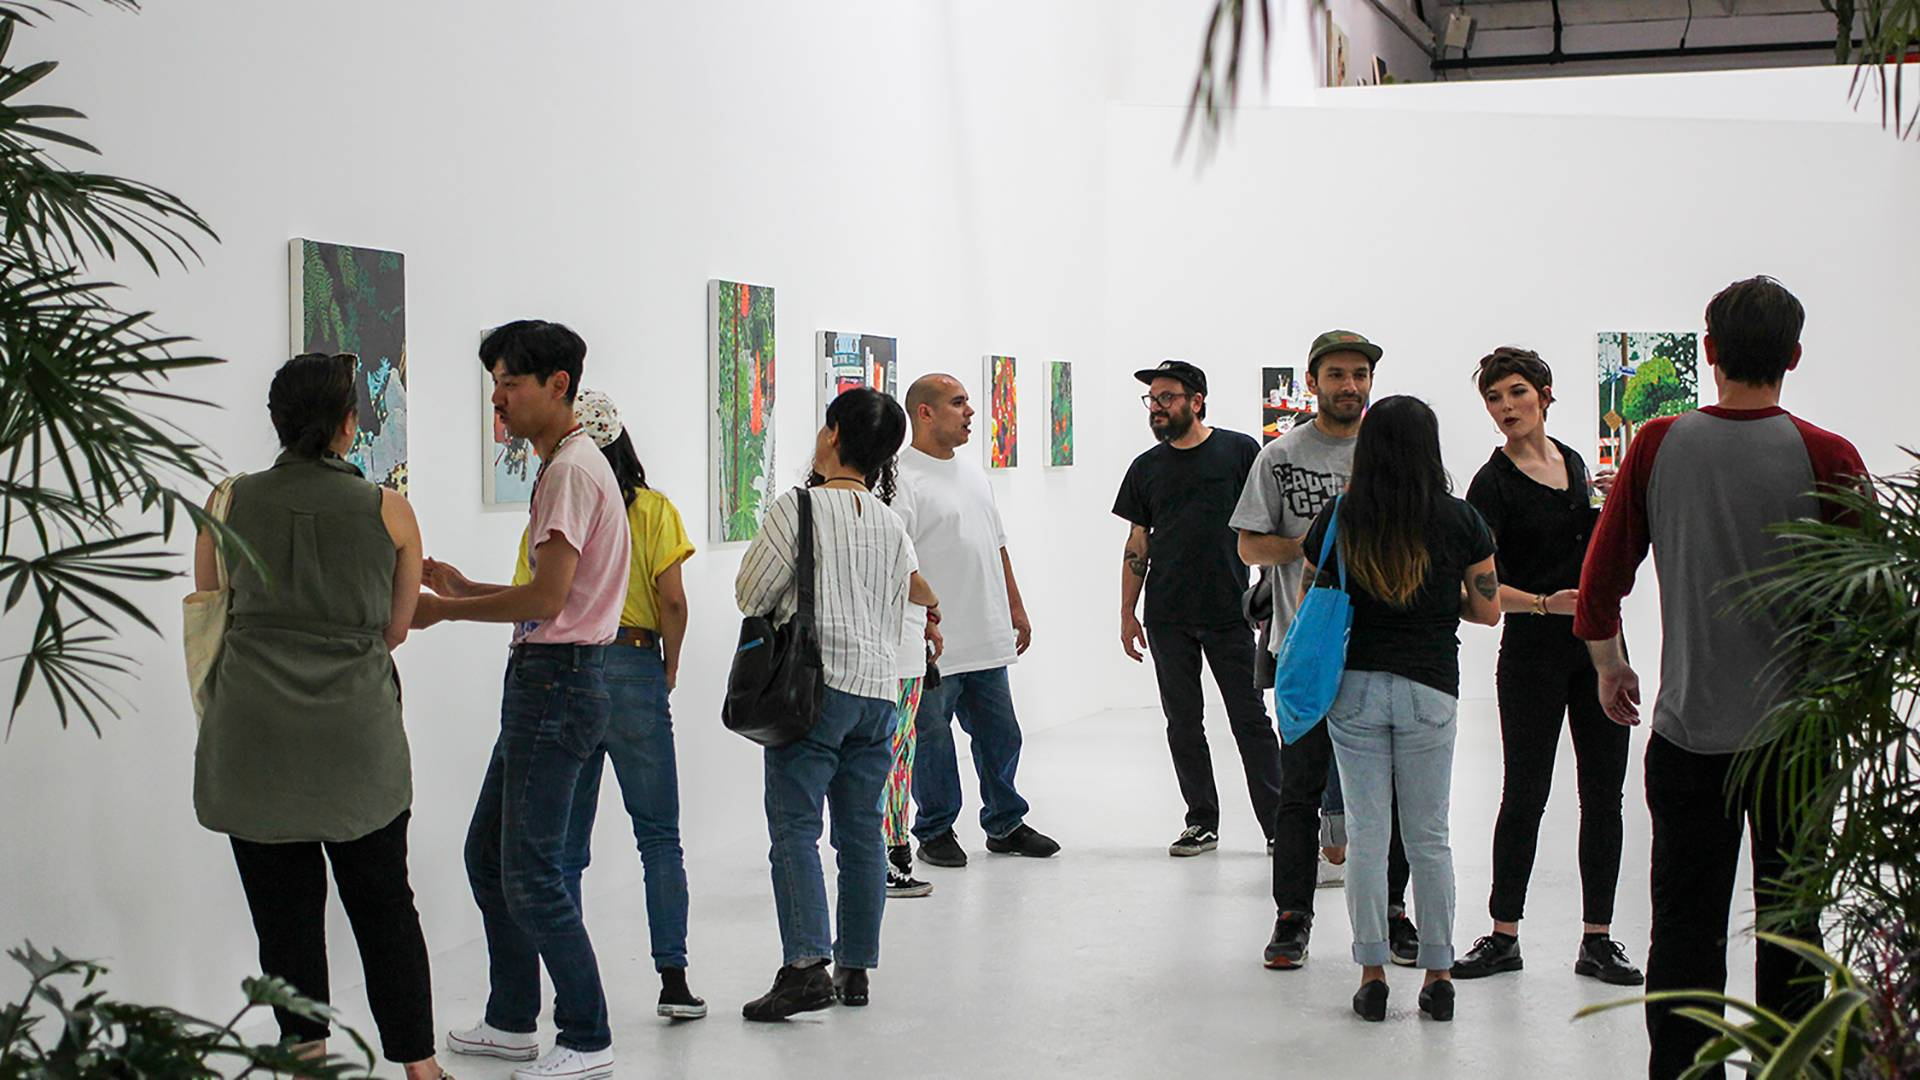 The new Guerrero Gallery during the opening of Hilary Pecis' 'El Verano' in 2016. Alan Gonzalez; Courtesy of Guerrero Gallery